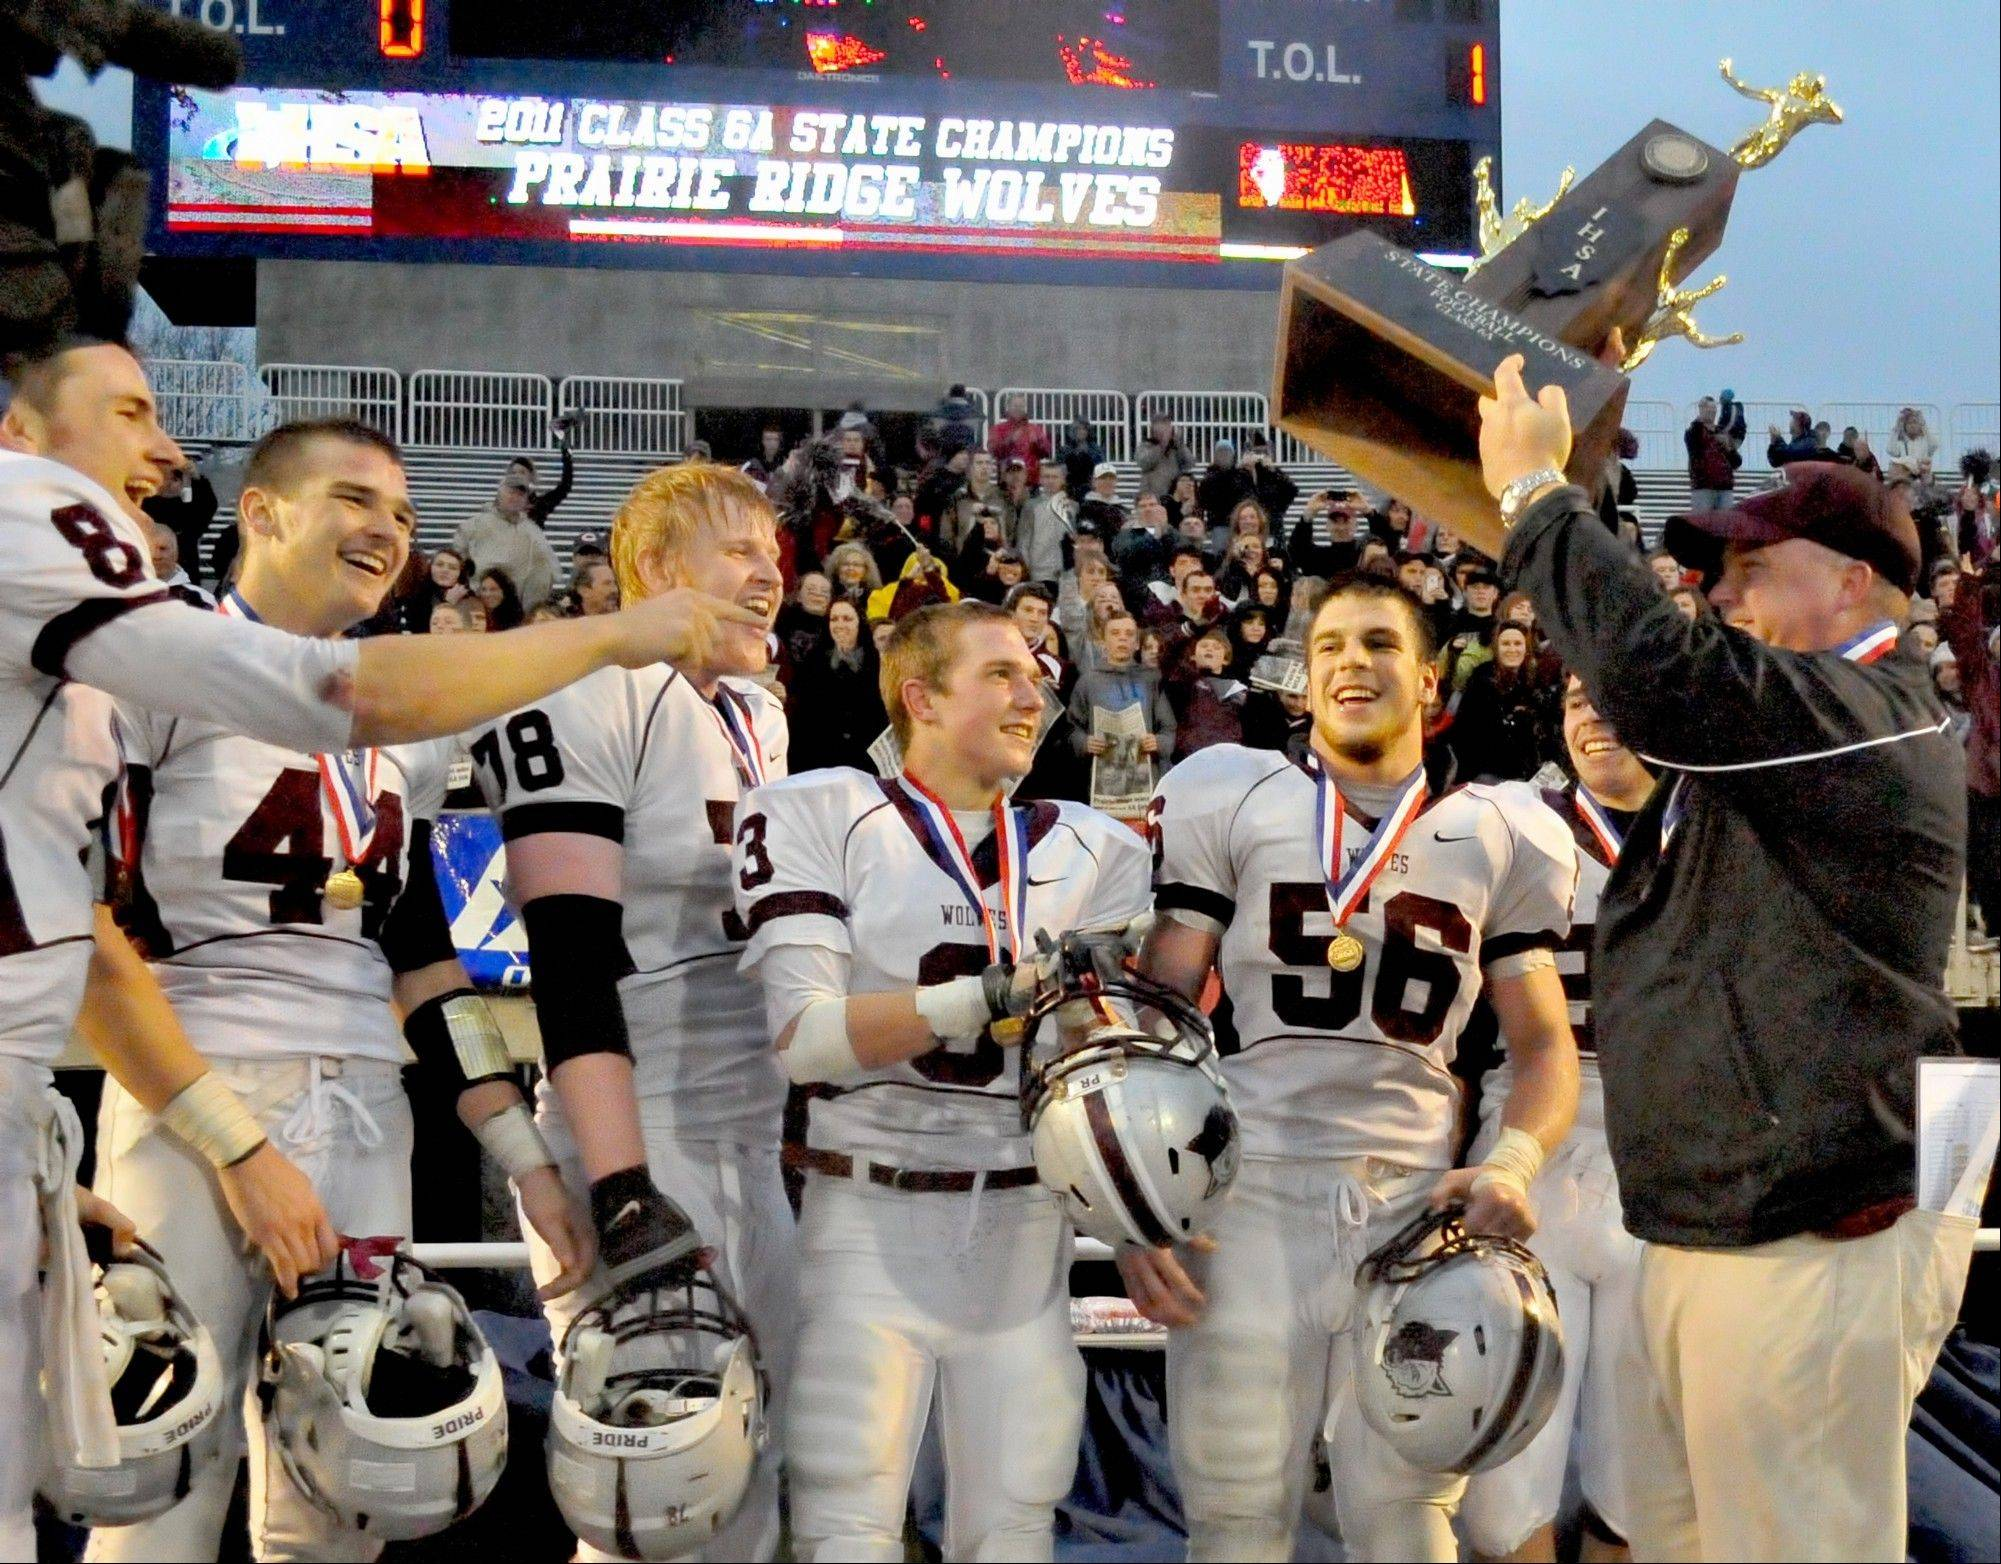 Prairie Ridge head coach Chris Schremp and members of the team accept the championship trophy after beating Richwoods 35-14 during the 2011 IHSA Class 6A high school championship football game at Memorial Stadium in Champaign.